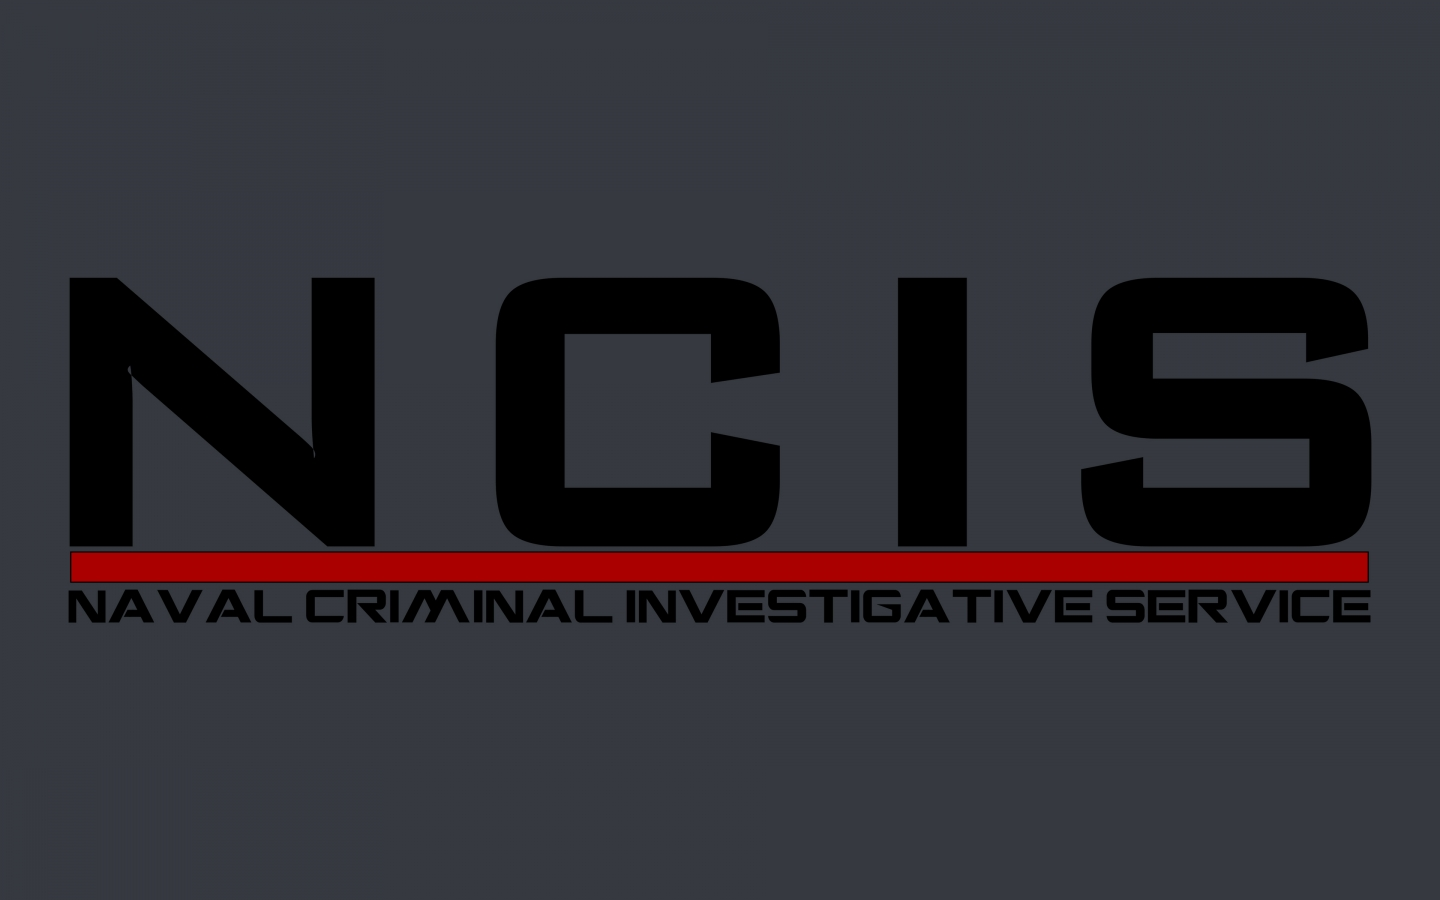 NCIS Logo for 1440 x 900 widescreen resolution